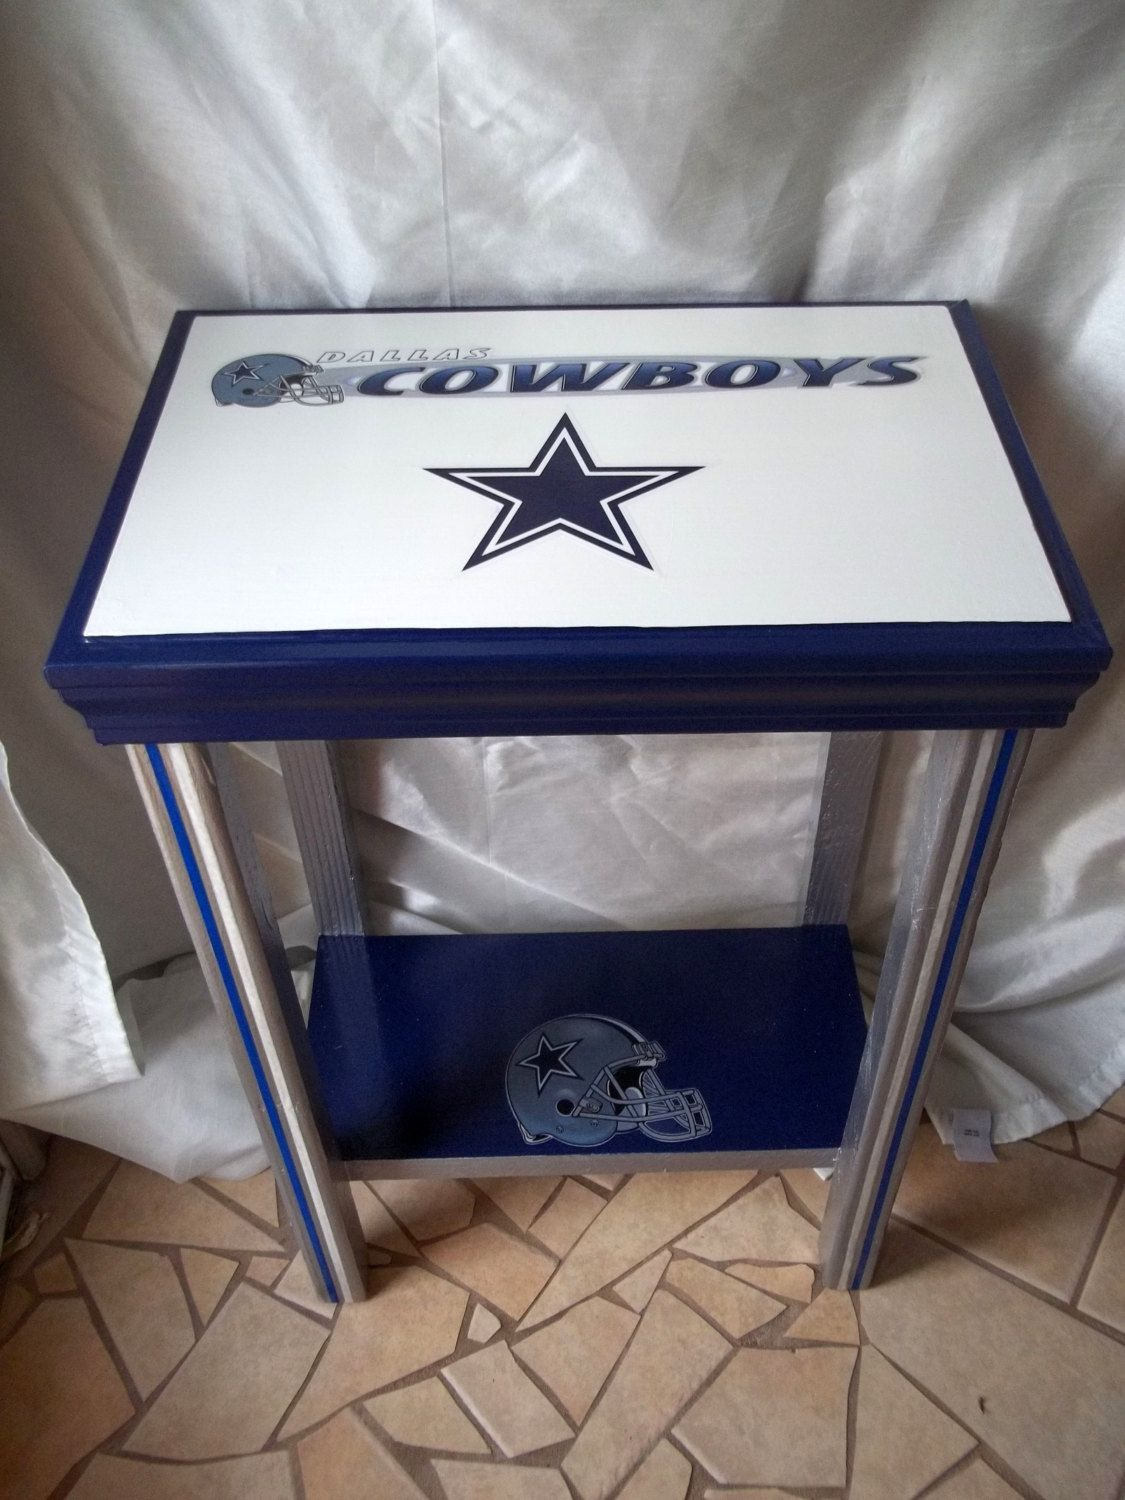 Dallas Cowboys Inspired Sports Table, NFL, Football, Man Cave Decor, End  Table, Side Table, Accent Table, Blue, White, Star, Gifts For Men By  DrSportsCaves ...